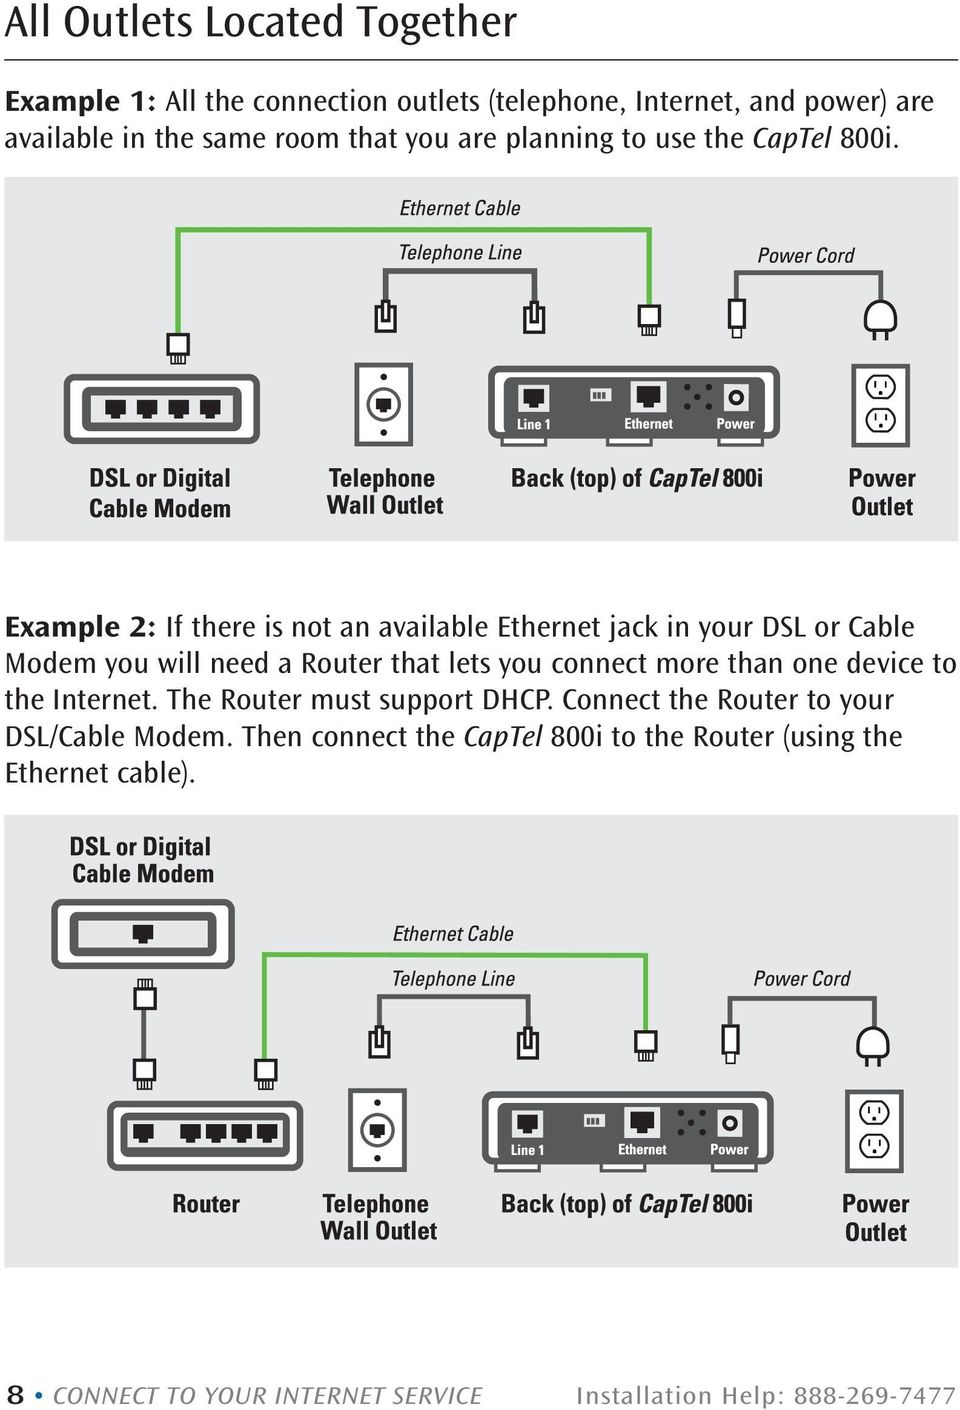 Example 2: If there is not an available Ethernet jack in your DSL or Cable Modem you will need a Router that lets you connect more than